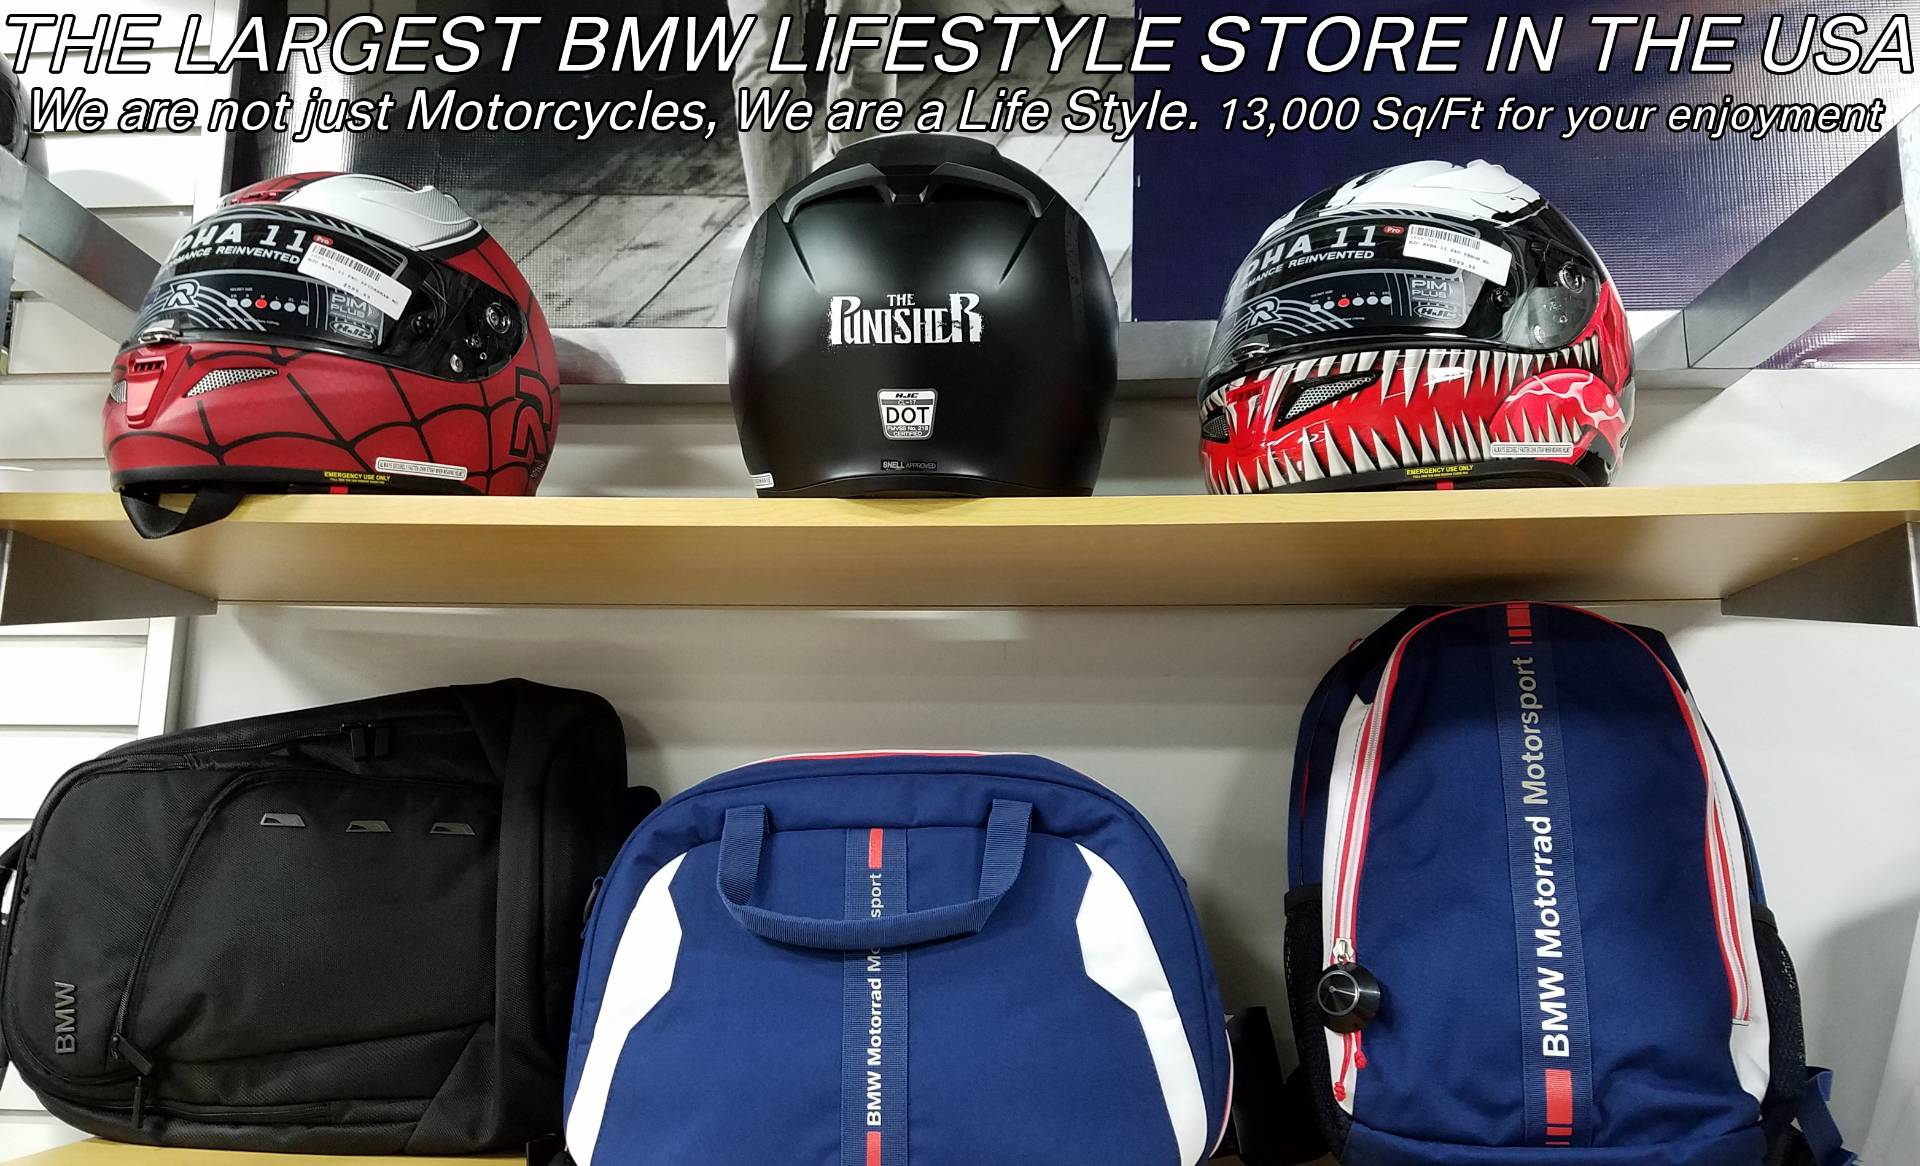 Used 2014 BMW R 1200 GS for sale, Pre-owned BMW R1200GS for sale, BMW Motorcycle Adventure, used BMW GS Fire Blue, BMW Motorcycles of Miami, Motorcycles of Miami, Motorcycles Miami, New Motorcycles, Used Motorcycles, pre-owned. #BMWMotorcyclesOfMiami #MotorcyclesOfMiami - Photo 37